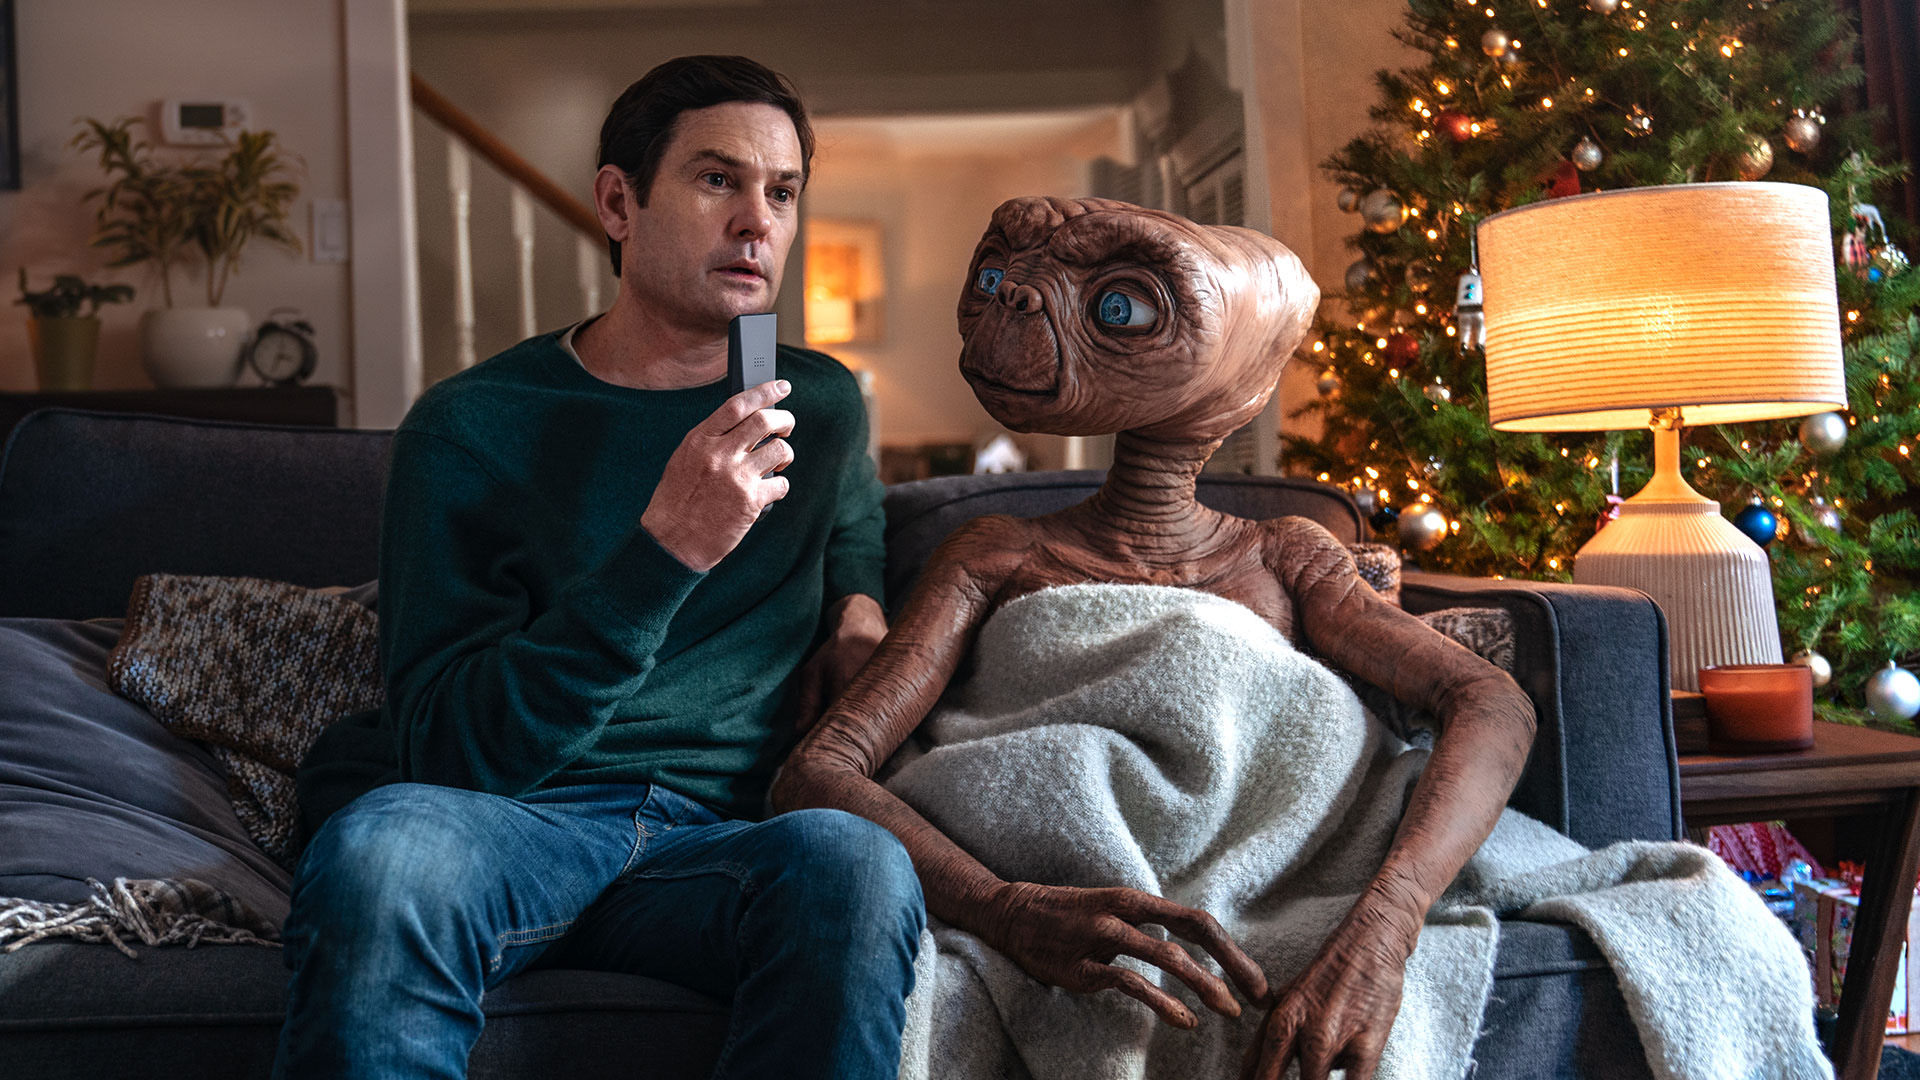 E.T. Returns To Earth In Sky's New Christmas Advert